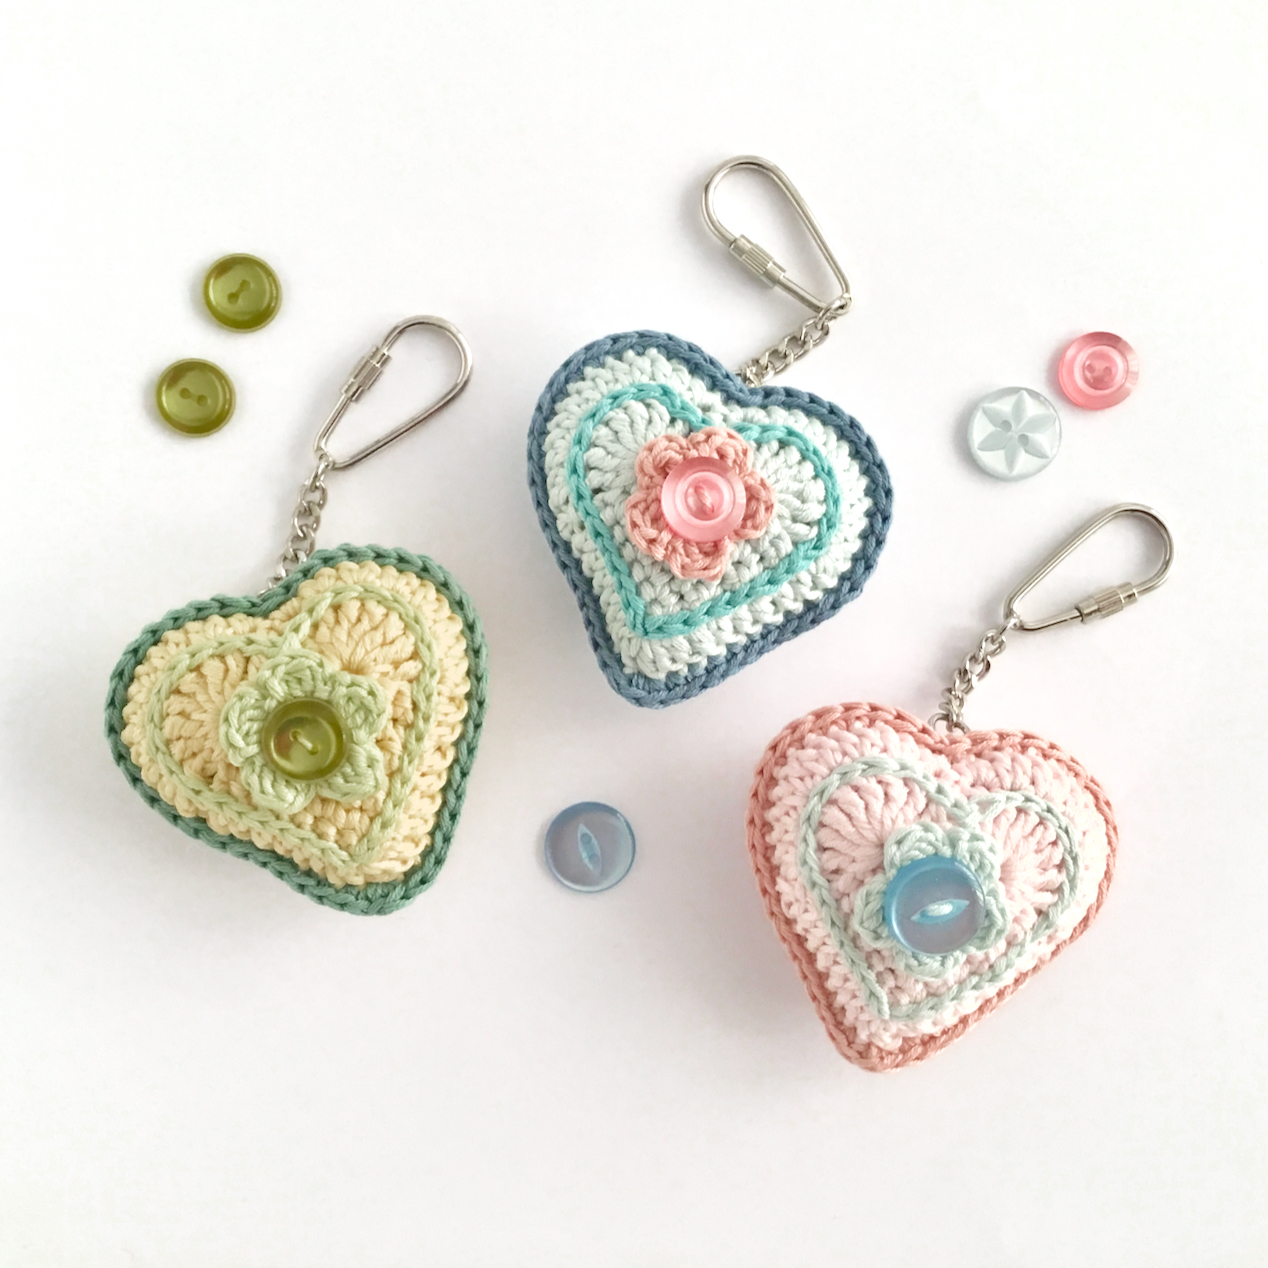 Crochet Heart Key Fobs with Vintage Buttons